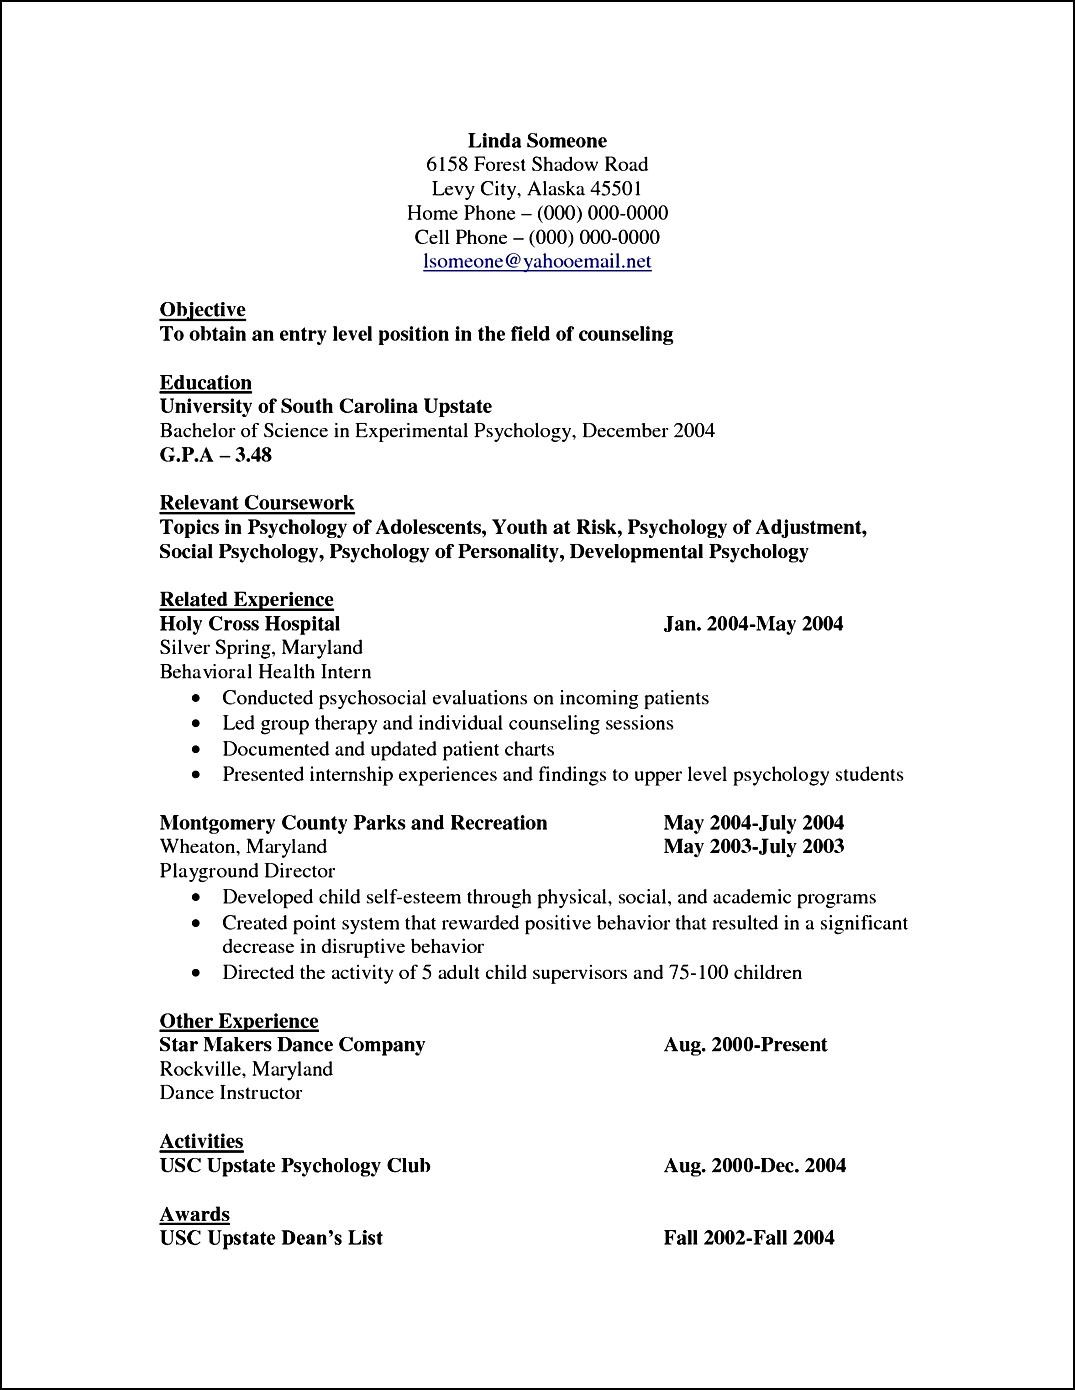 Sample Cv Resume Format Curriculum Vitae Template For Psychologist Free Samples